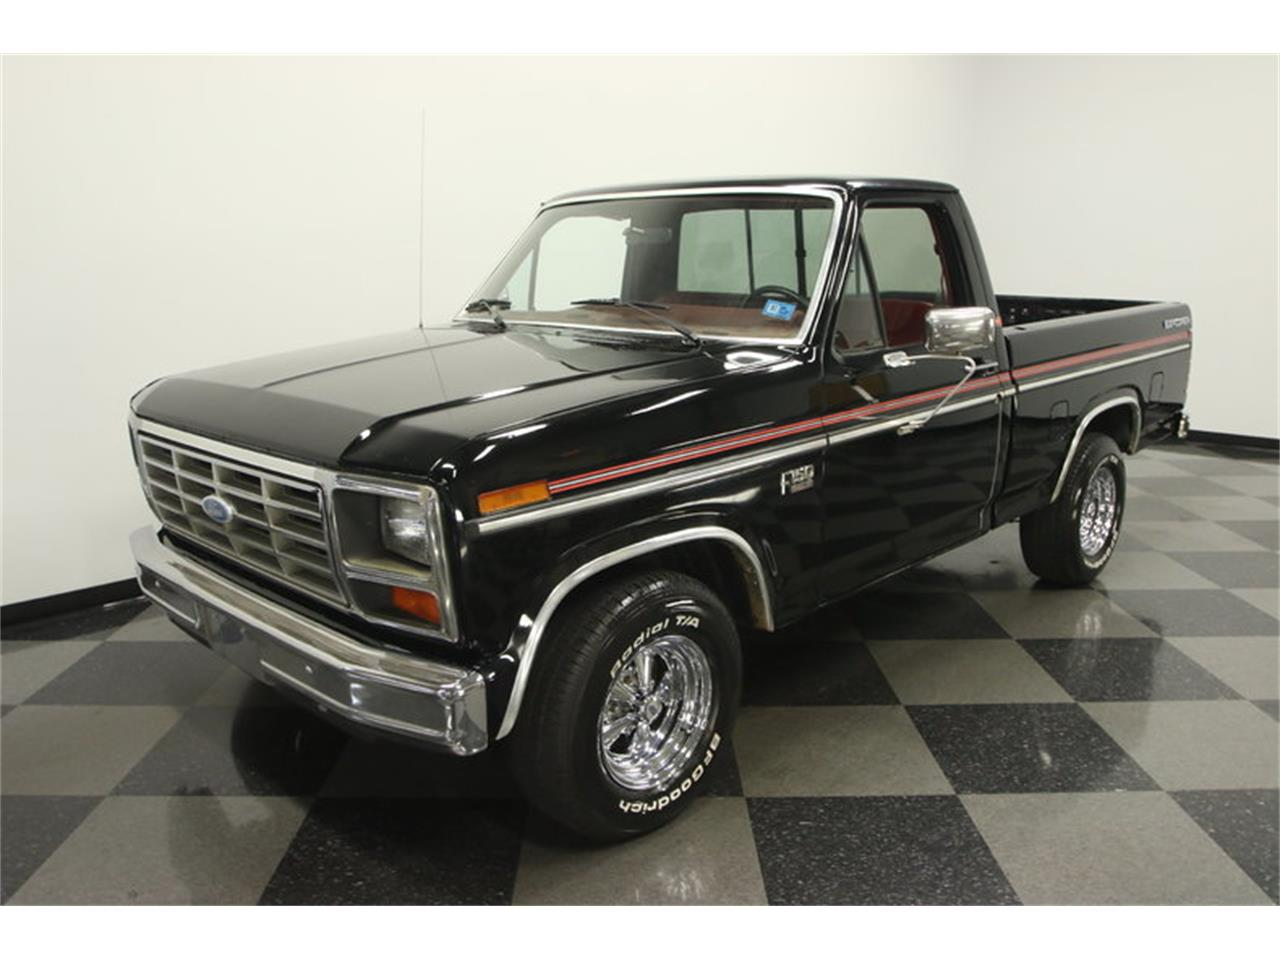 Large Picture of '85 F-150 XLT Lariat Explorer located in Florida - $12,995.00 - LFBW